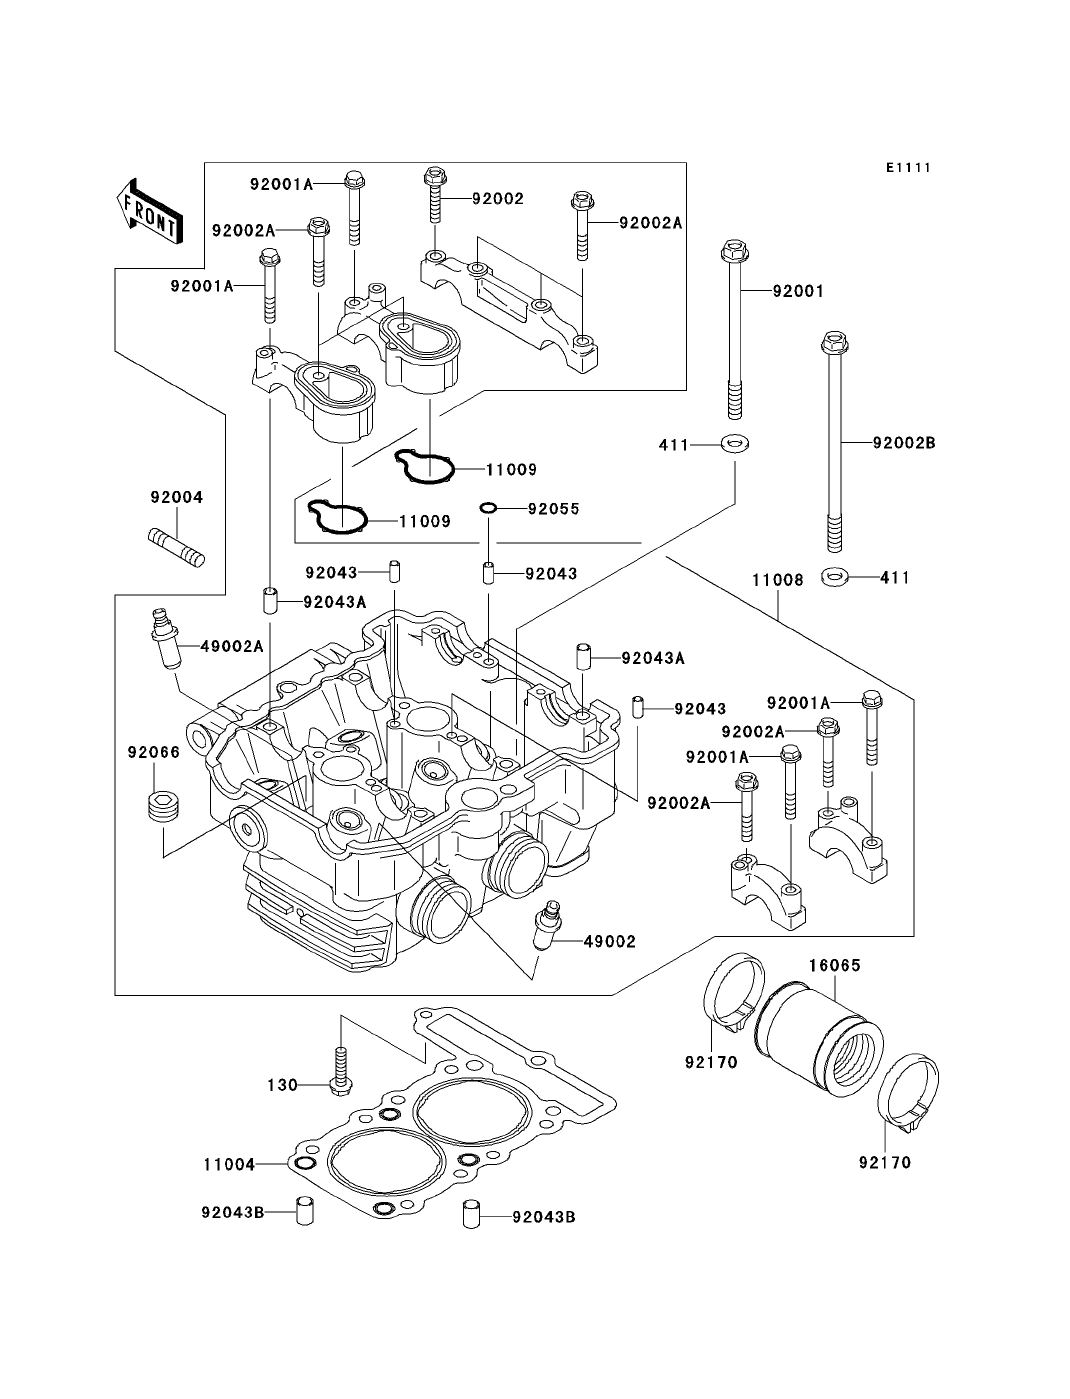 kawasaki bayou 250 carburetor diagram freightliner wiring manual carb ninja mark stanito com trouble after cleaning did i mess up on the assembly